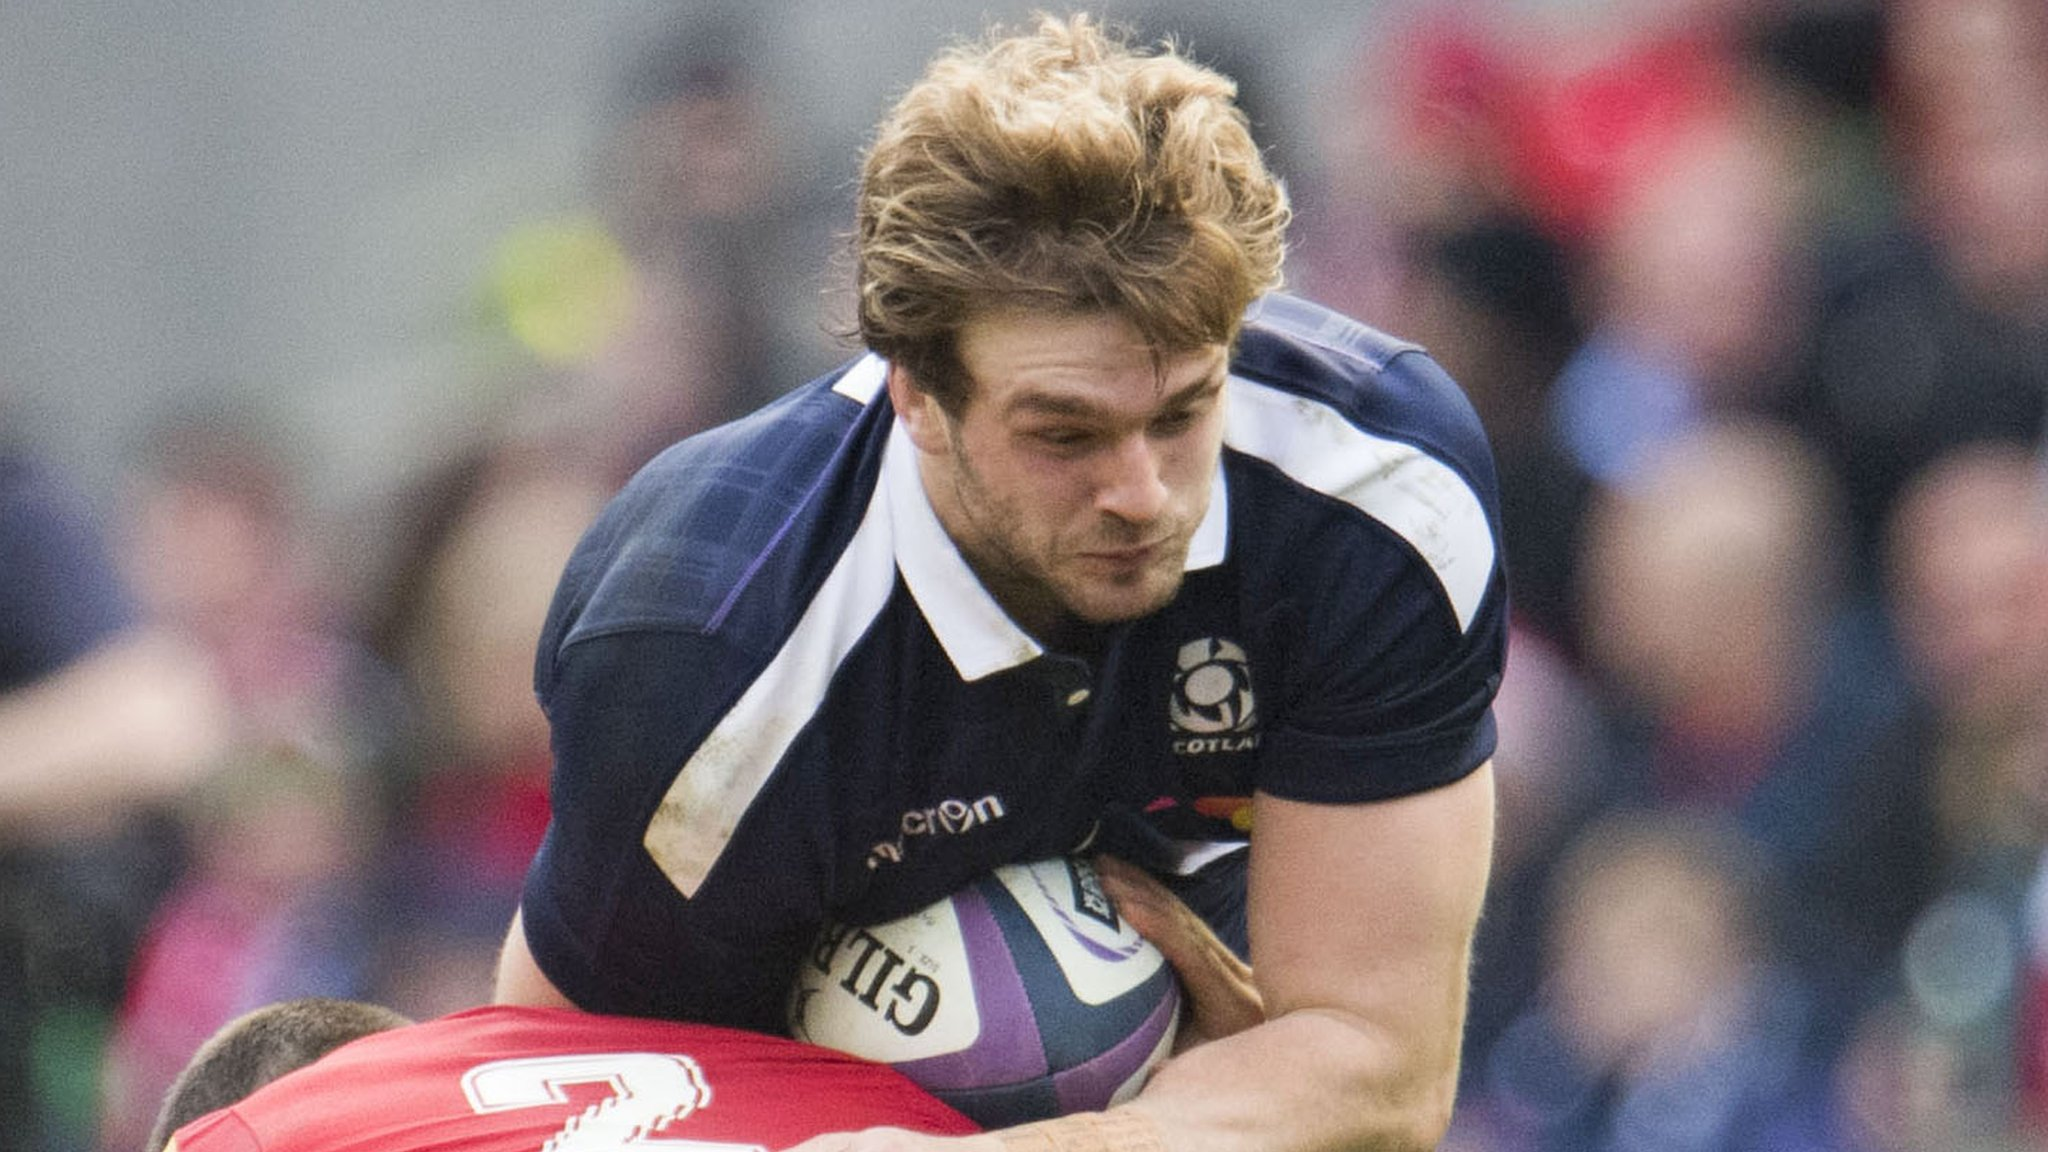 Scotland's Gray out for around four months with back injury